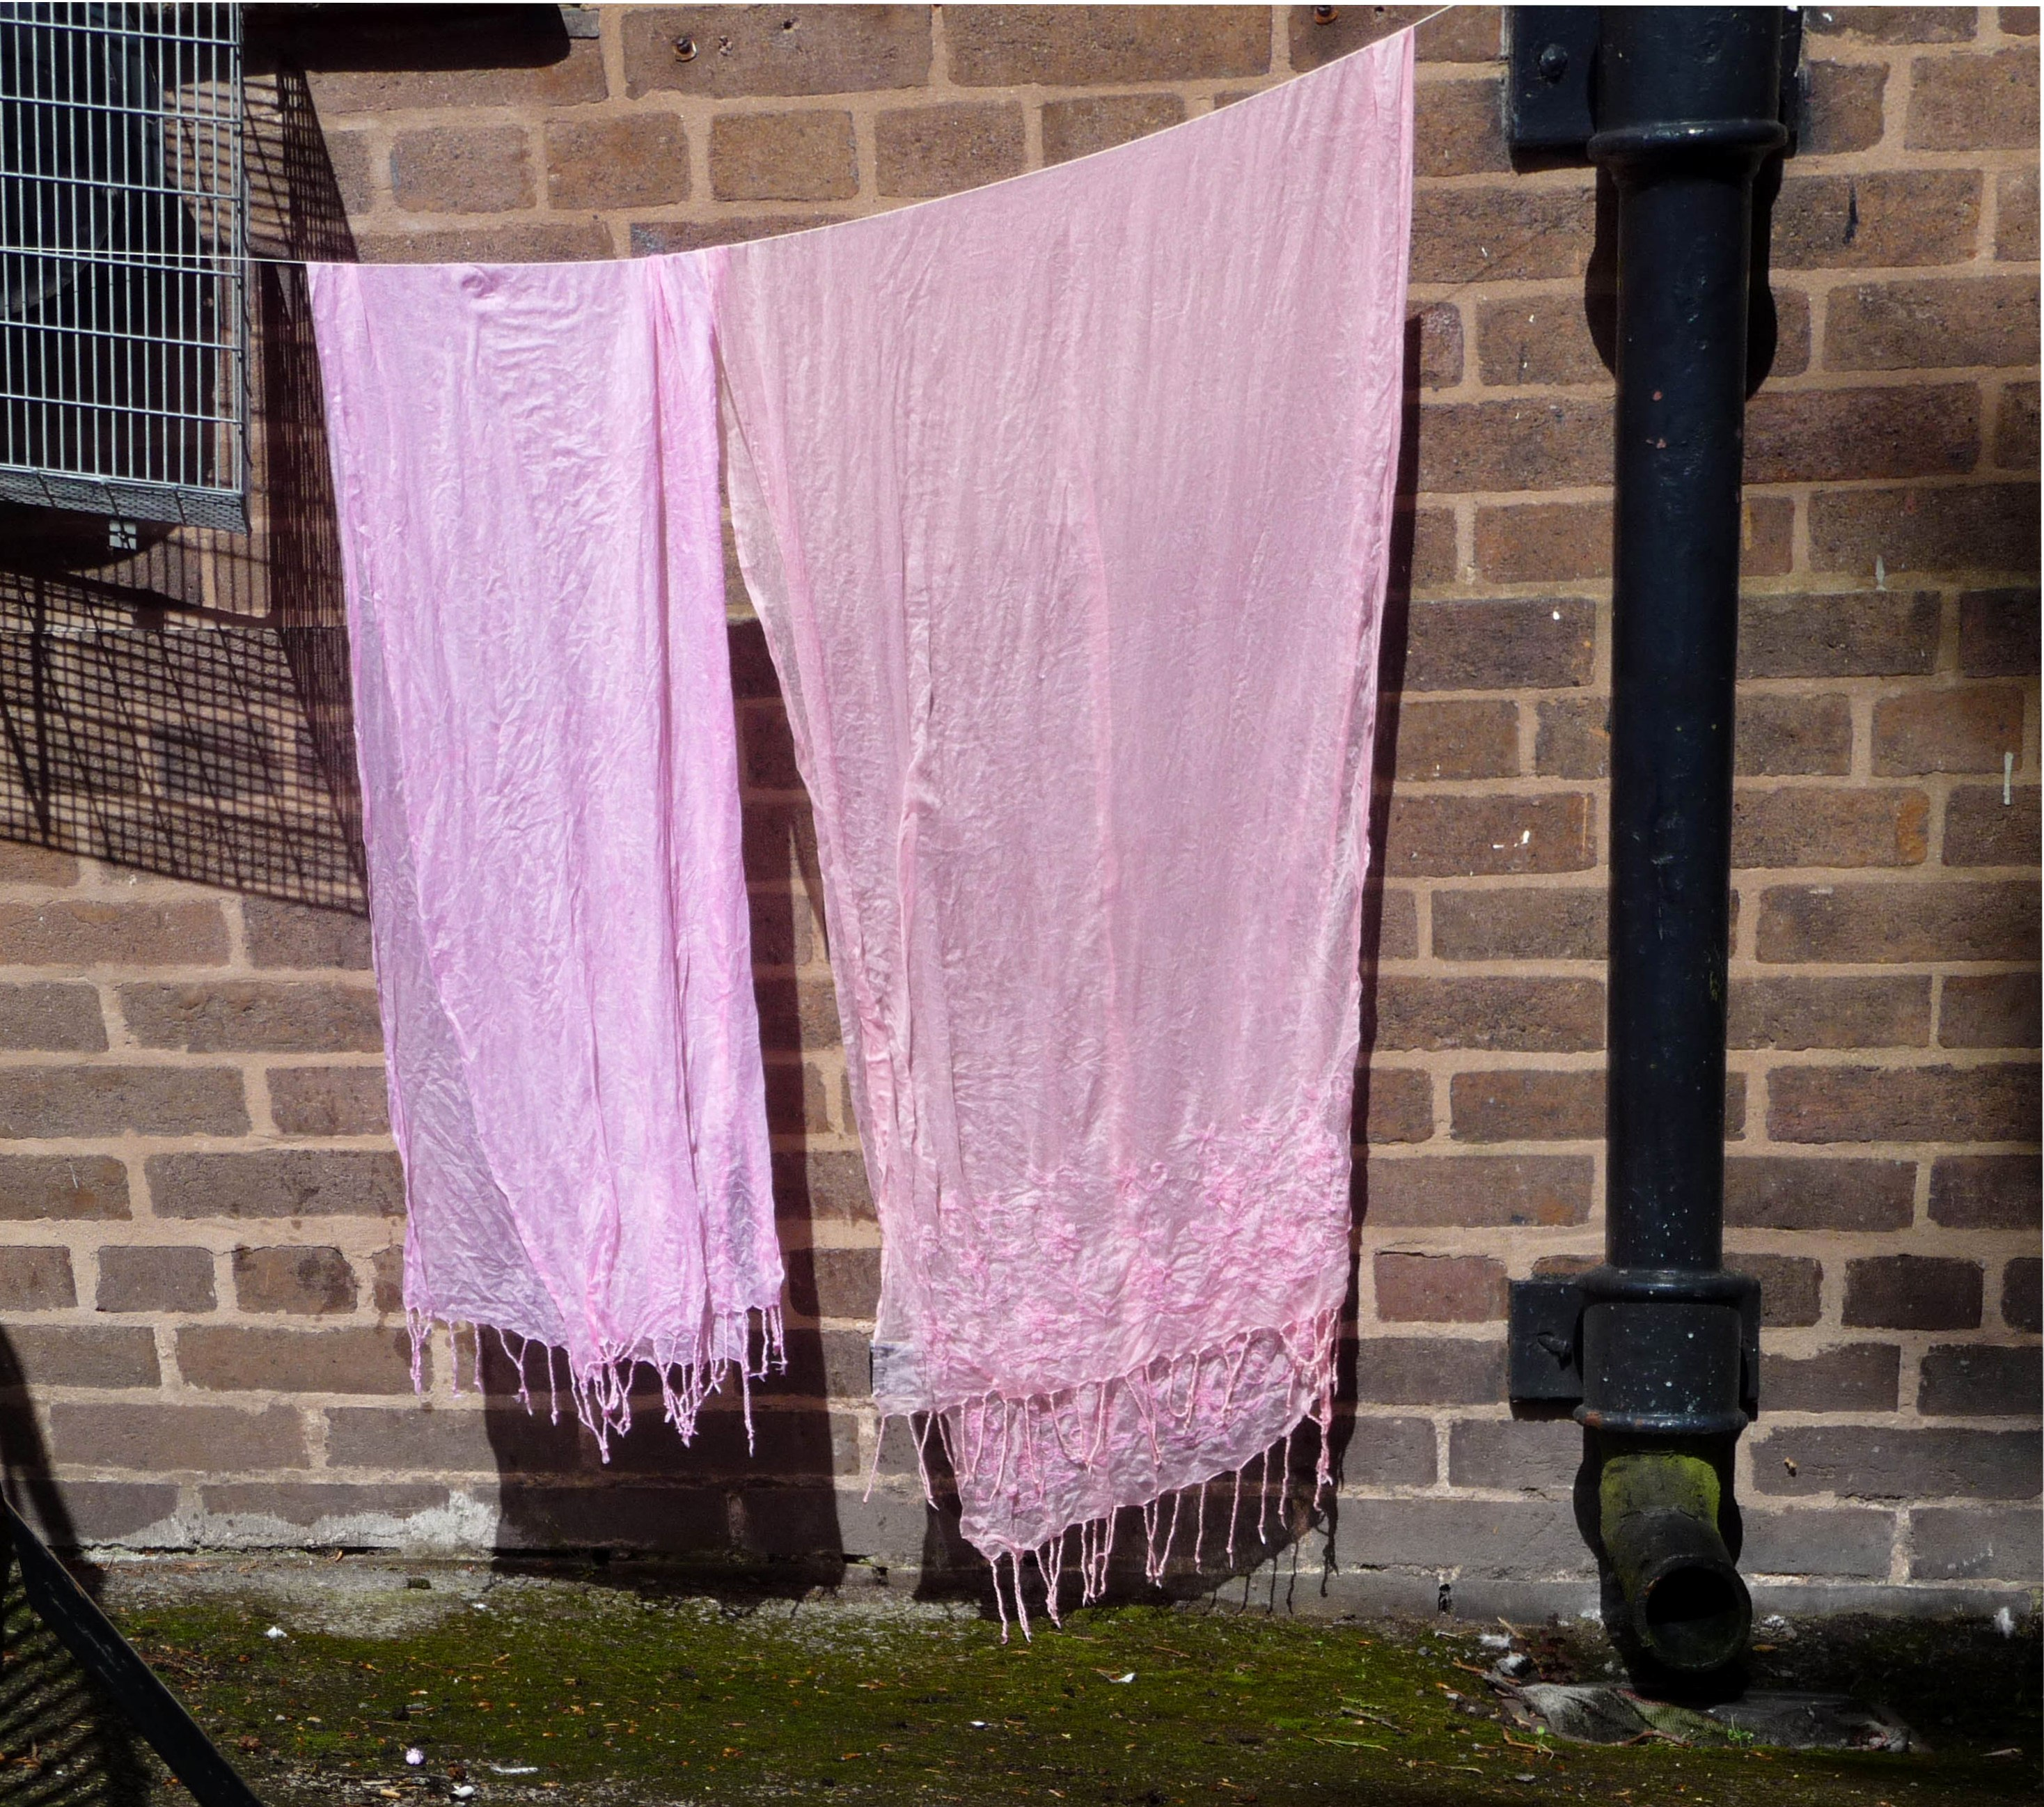 some of our dyed Sreepur scarves hanging in the sun to dry